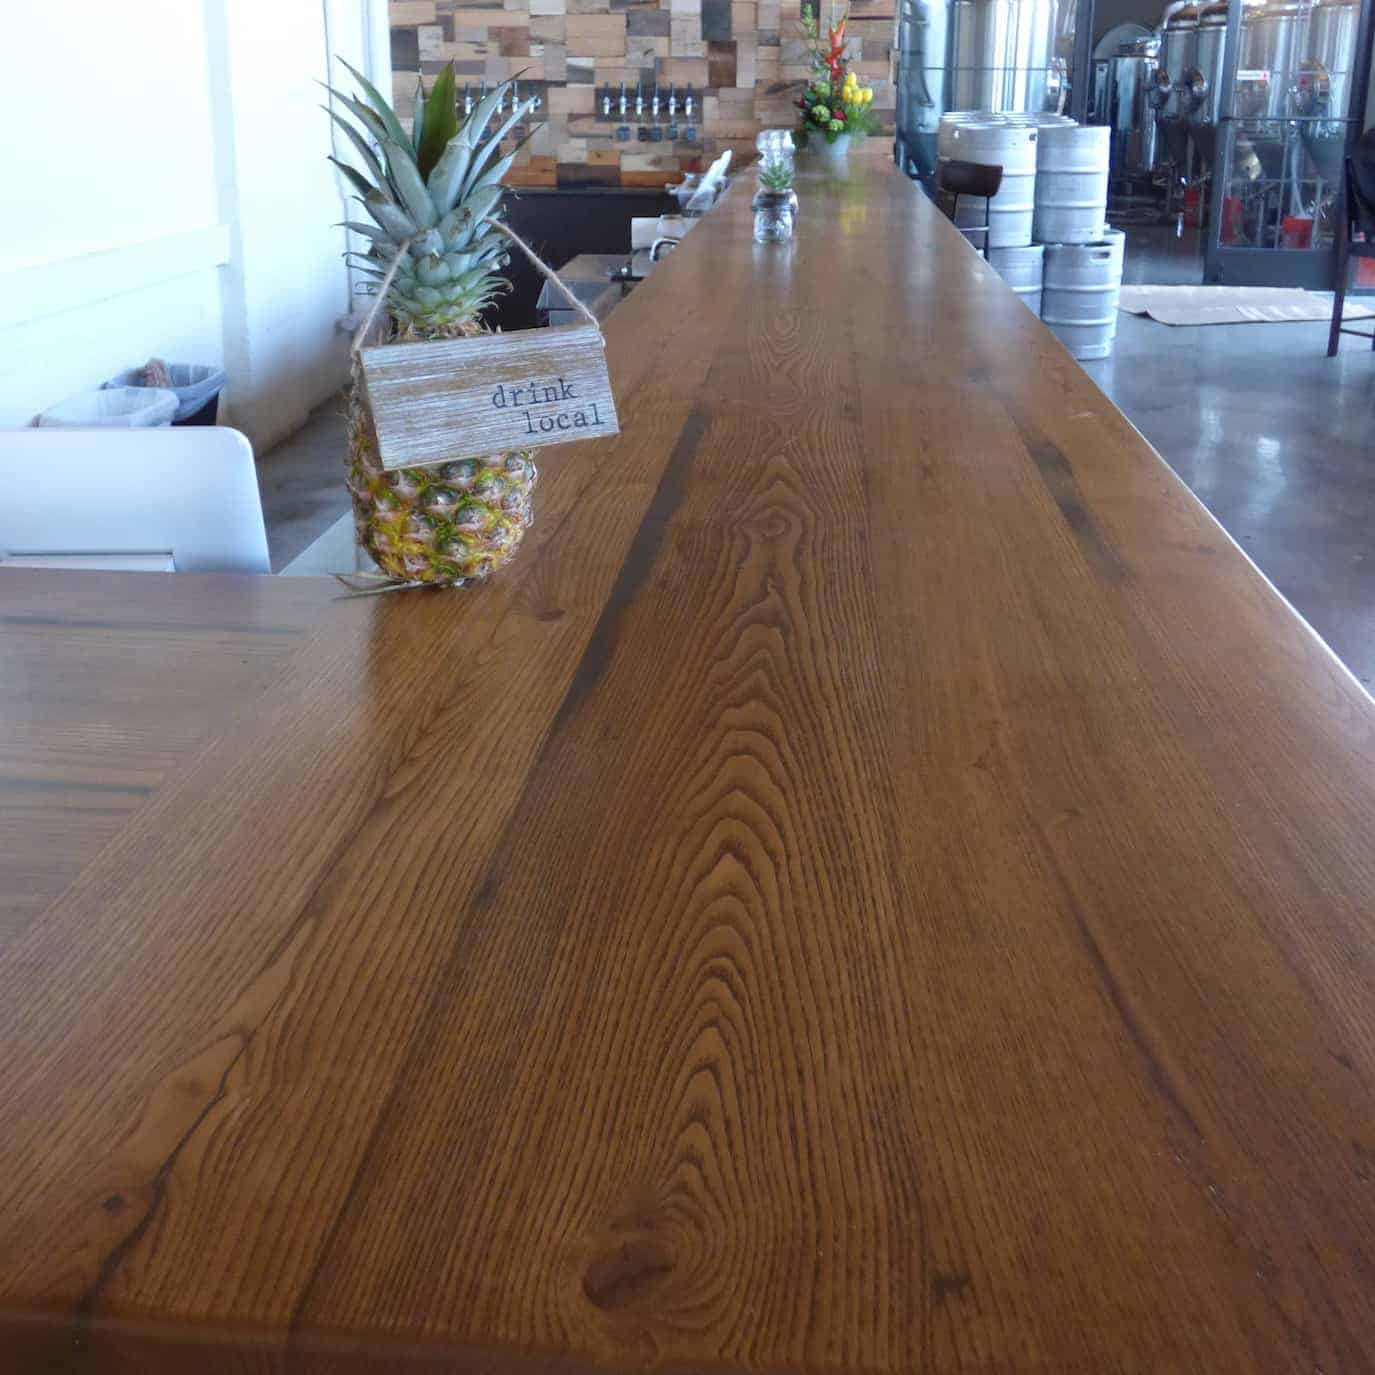 Reclaimed Chestnut Bar @ New Park Brewery